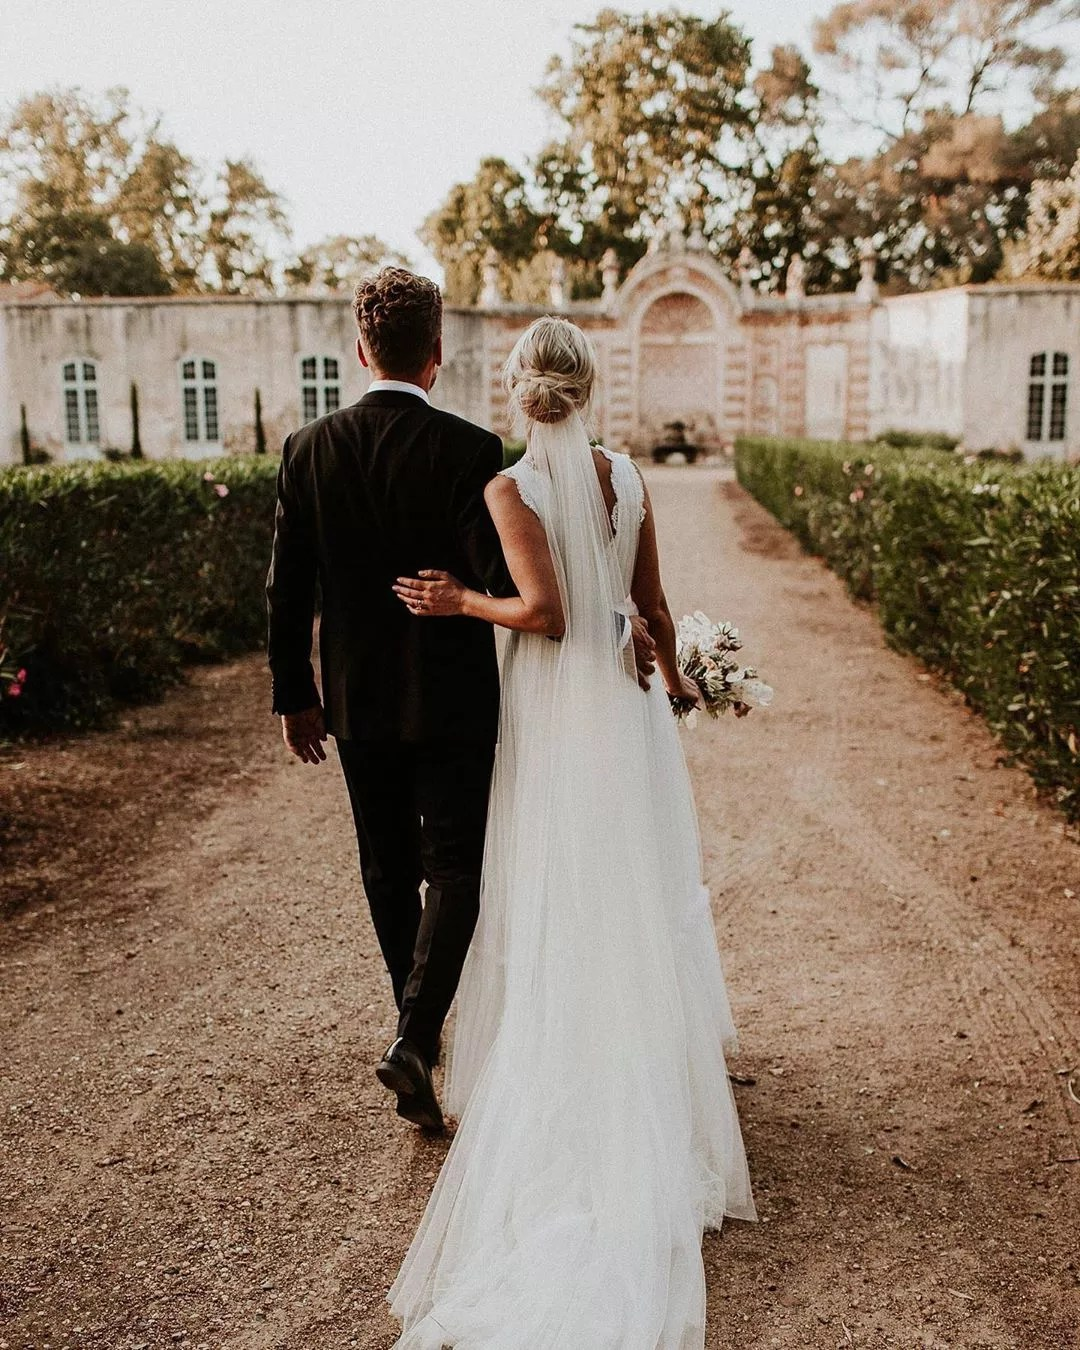 Couple Walking Down the Aisle at Beaulieu Garden in Napa Valley. Photo by Instagram user @dceybridal